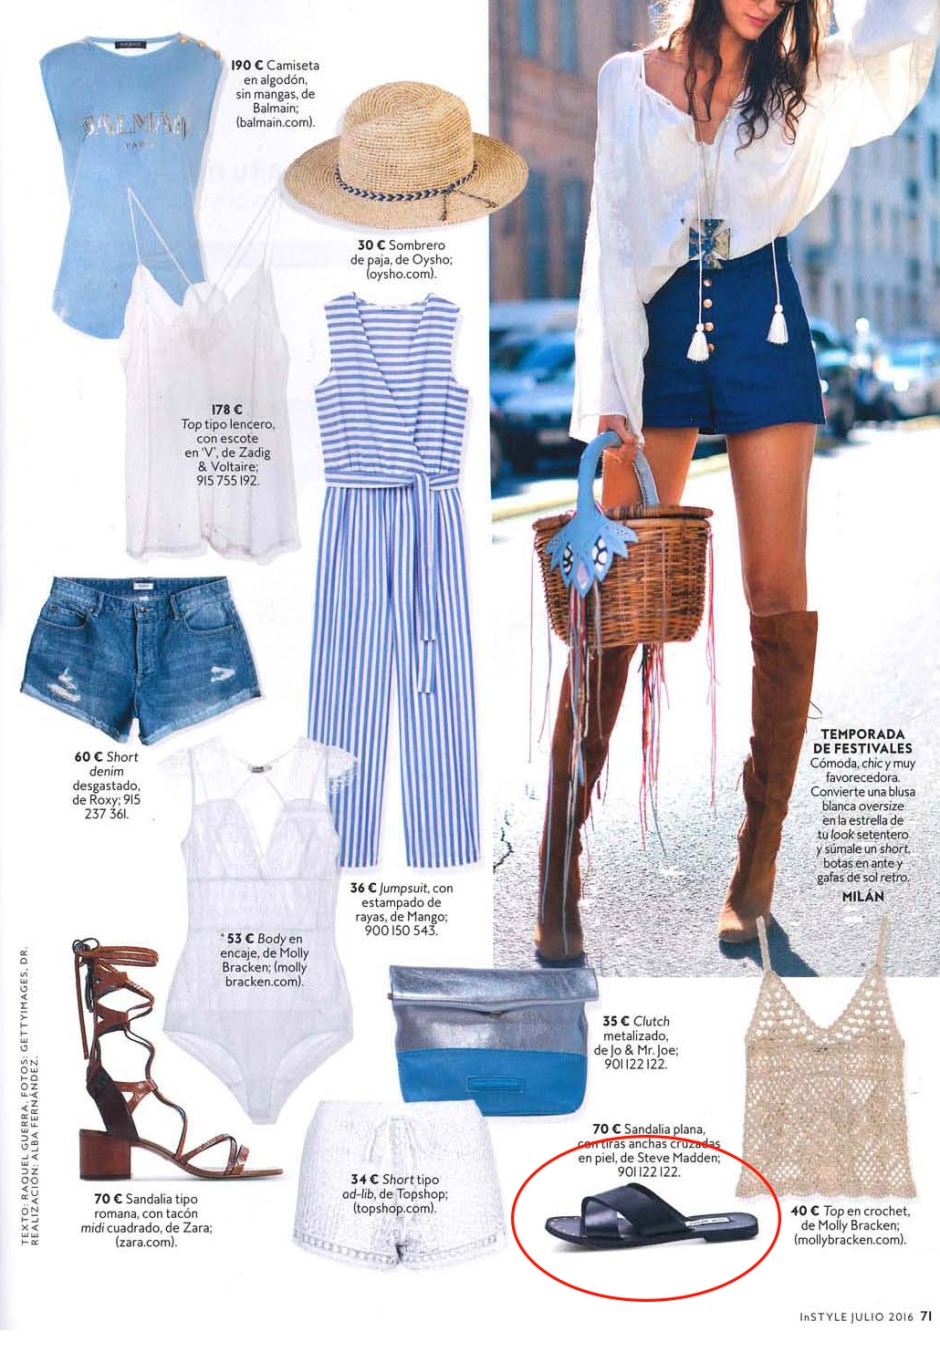 STEVE MADDEN INSTYLE CLIPPING